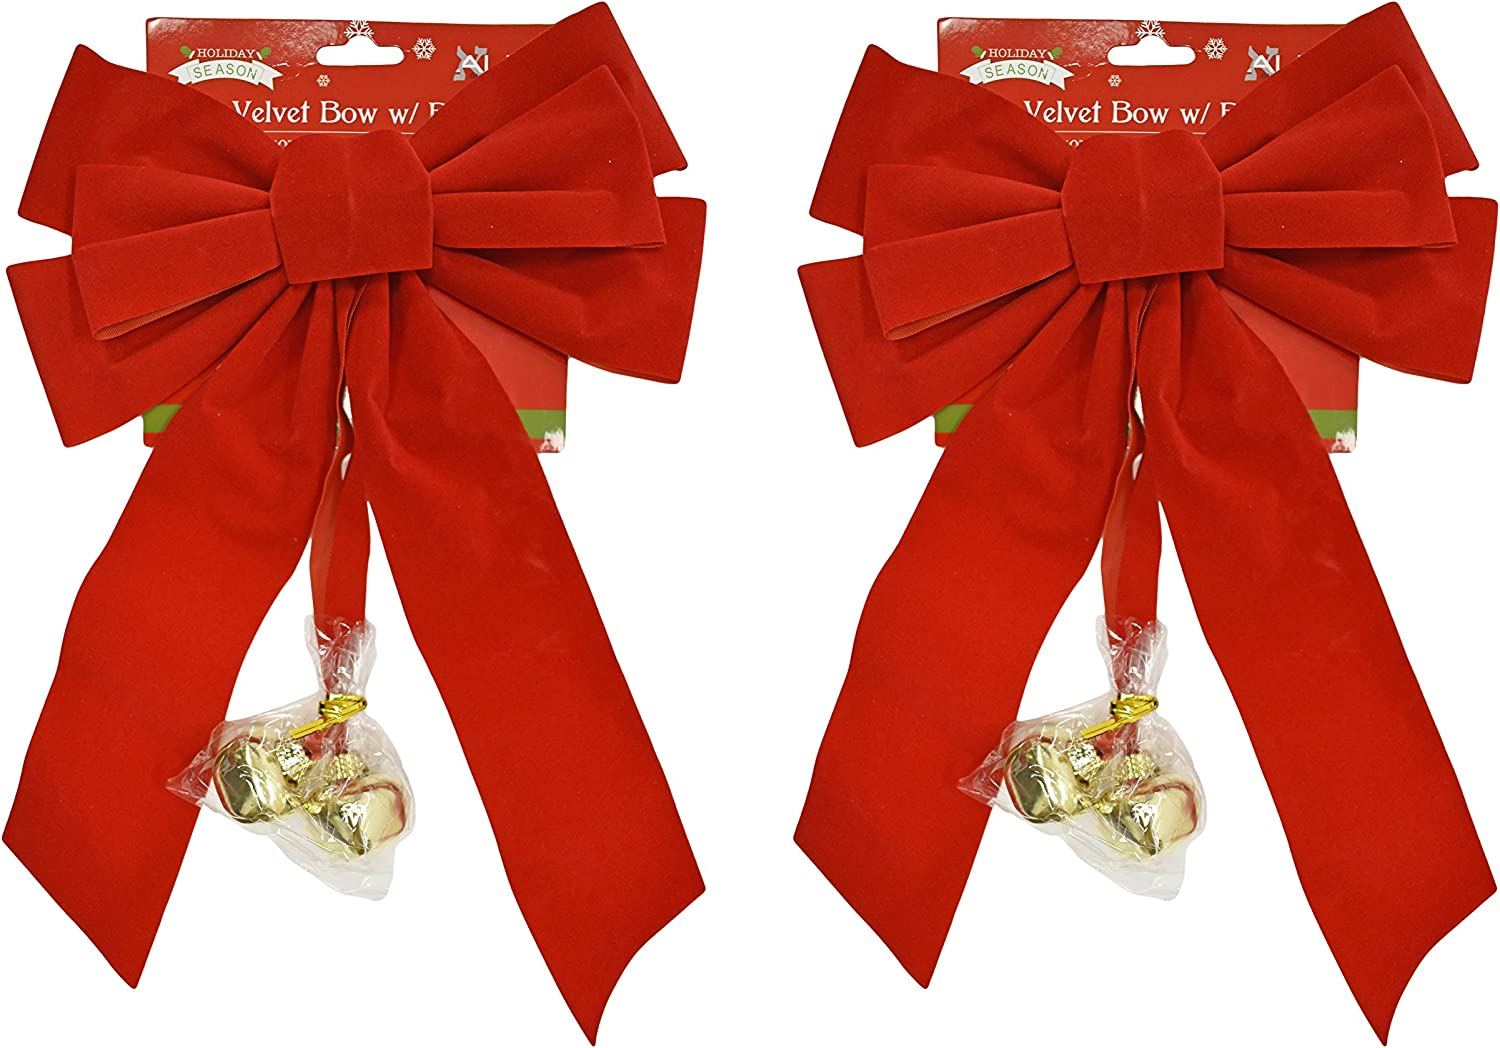 Set of 2 Red Velvet Festive Holiday Christmas Bows With Bells - Perfect as Tree Ornaments - Tree Filler - Decorative Ornaments - Perfect for Preparing for the Holidays! (2, Red Velvet With Bells)